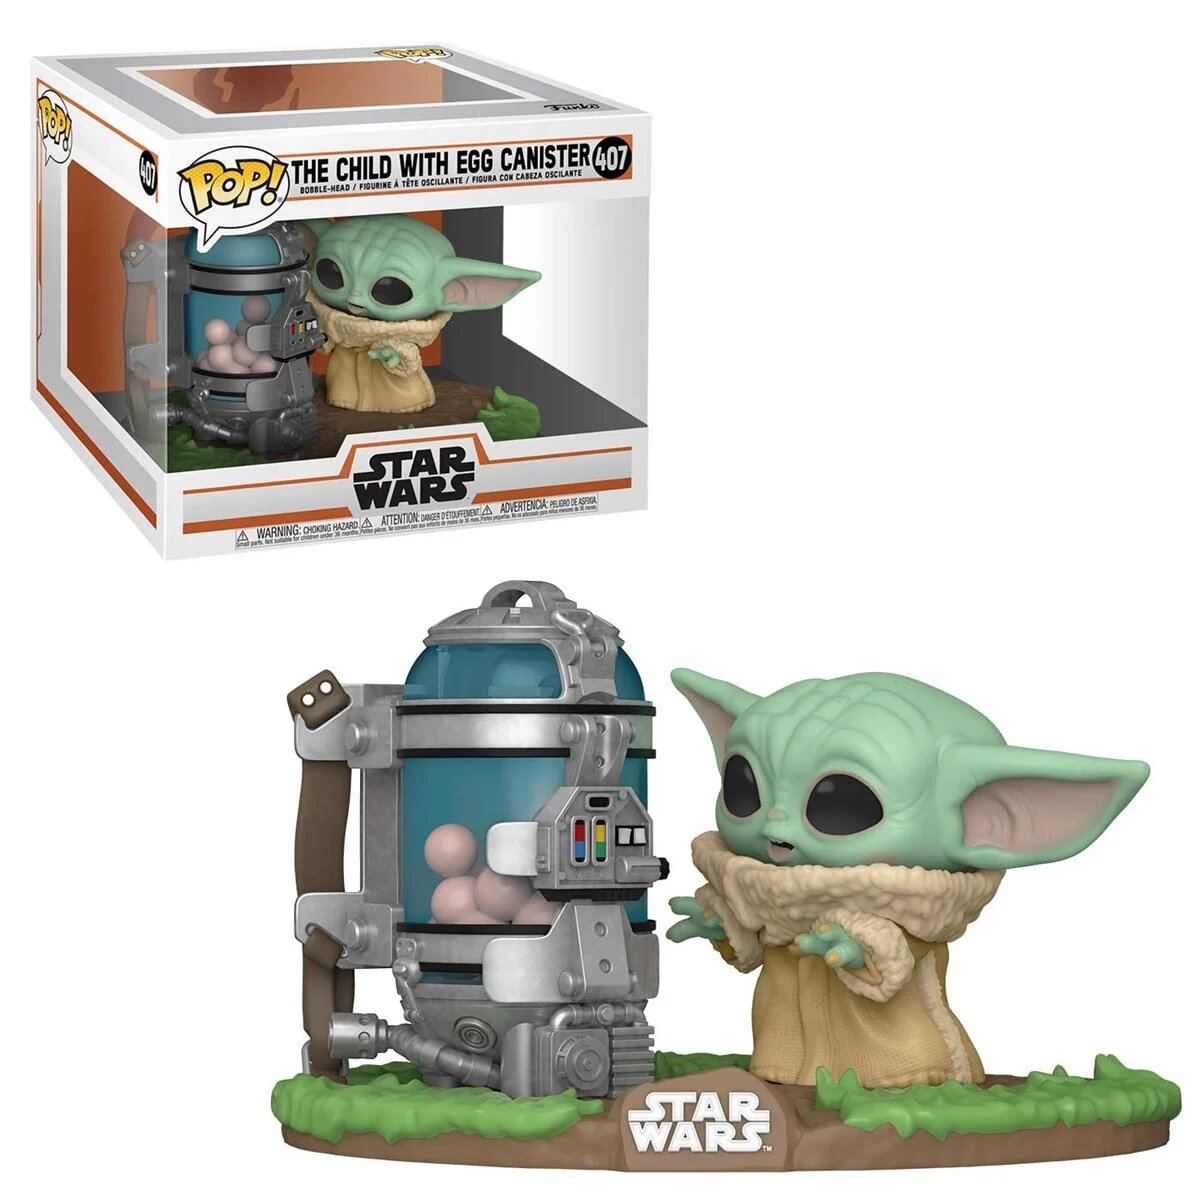 Funko Pop! The Mandalorian: Grogu ''Baby Yoda'' com Canister Deluxe (The Child with Canister Deluxe) Star Wars #407 - Funko